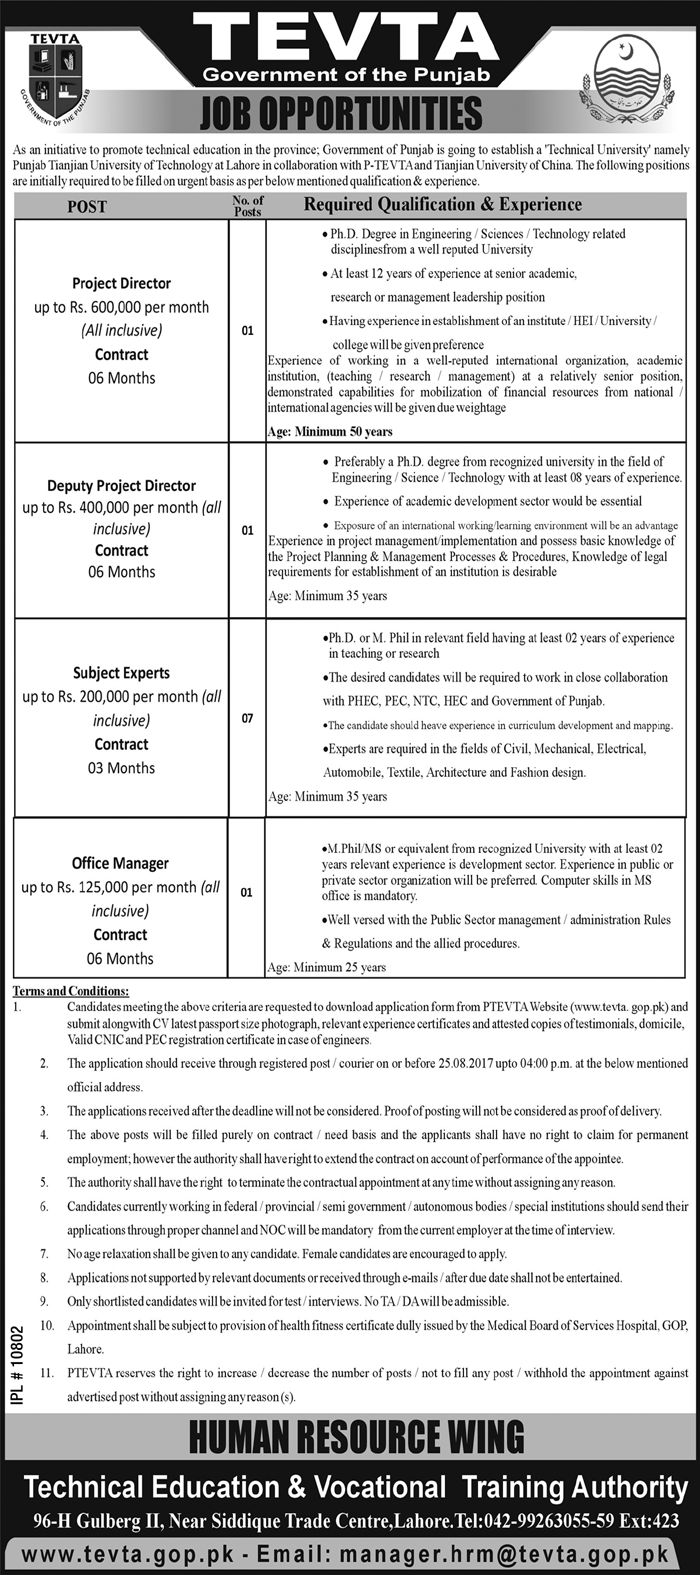 TEVTA Technical Education And Vocational Training Authority  Jobs Career Opportunity http://ift.tt/2vDvAuq   A san initiative to promote technical education in the province; Govemment of Punjab is going to establish a 'Technical University' namely Punjab Tianjian University of Technology at Lahore in collaboration with P-TEVTA and lianjian University of China. The following positions are initially required to be filled on urgent basis asper below mentioned qualification & experience  TEVTA…